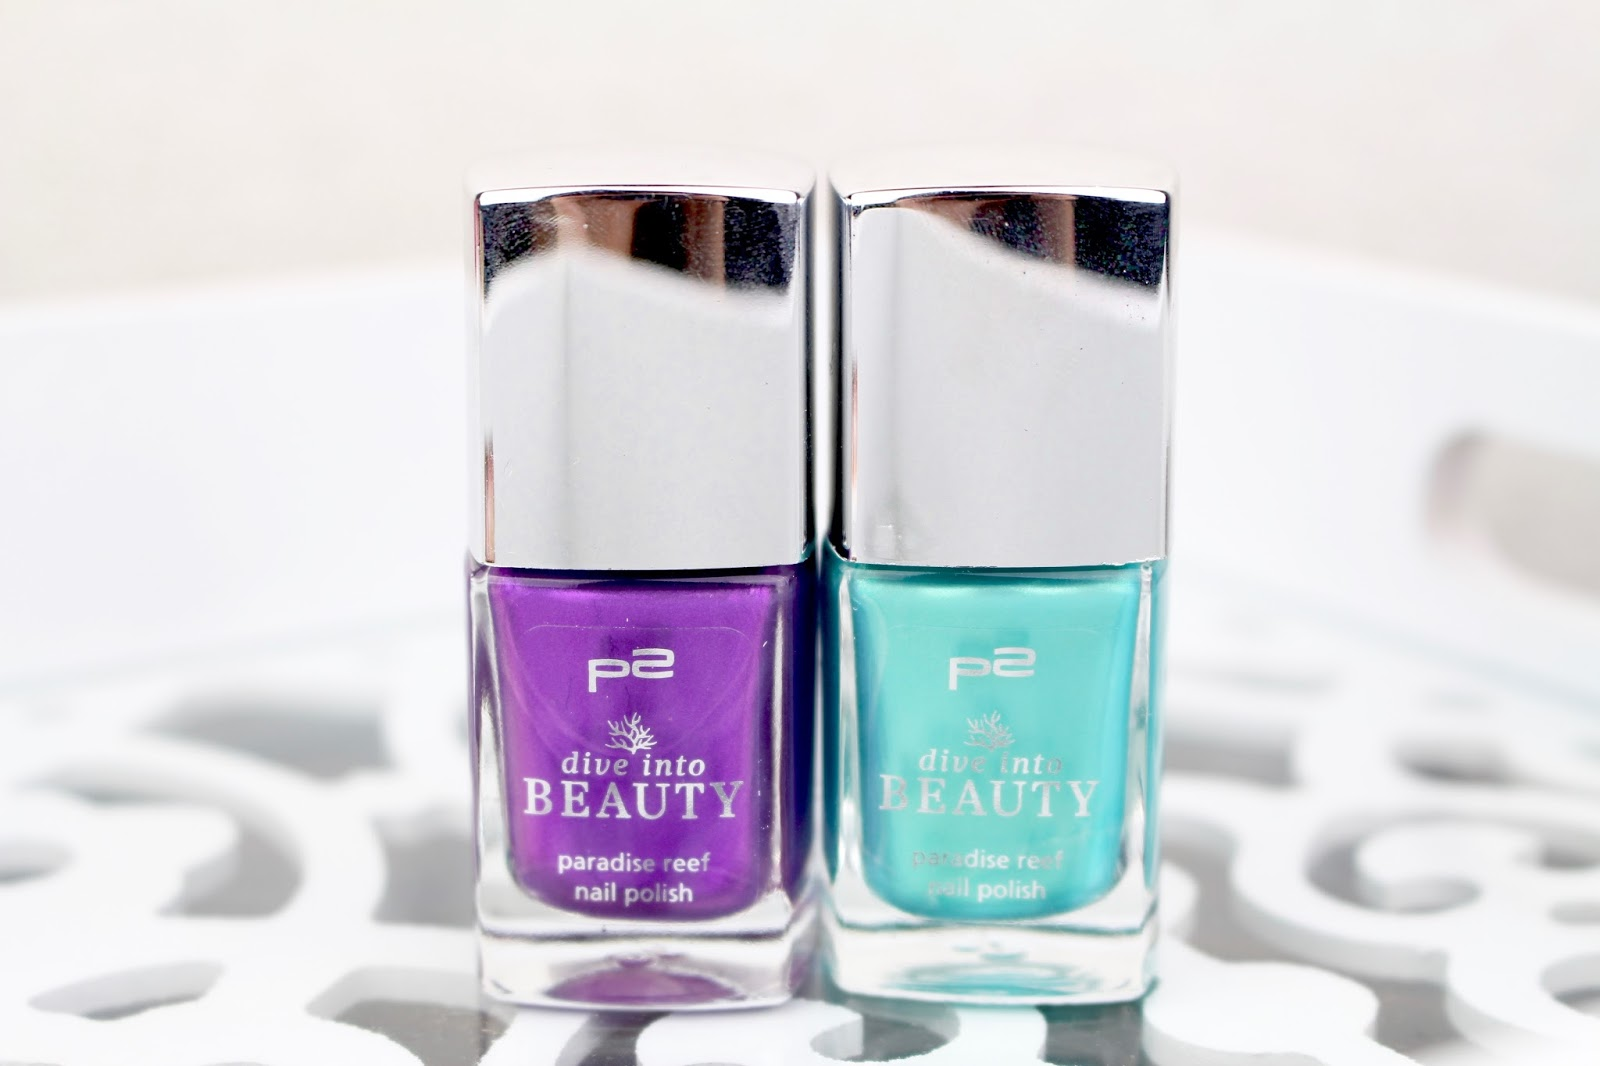 P2 Dive Into BEAUTY Limited Edition Paradise Reef Nail Polish 020 Lilac Jellyfish